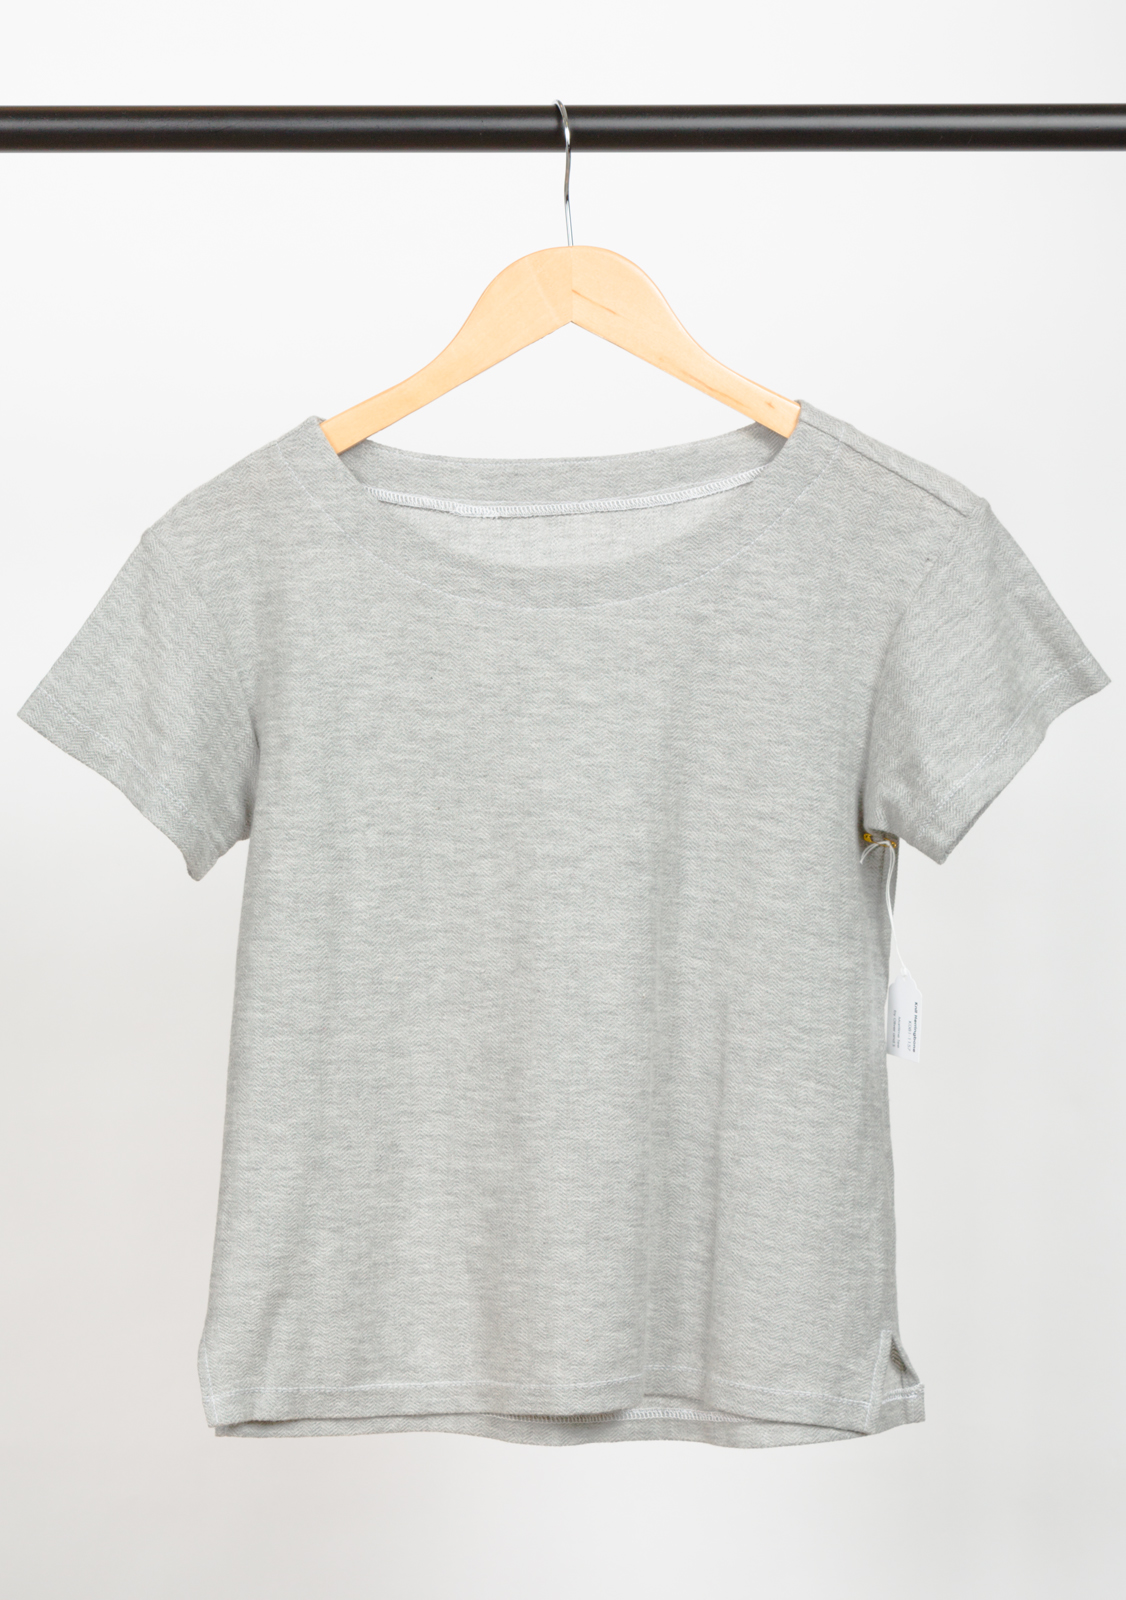 MARITIME TEE   DESIGNED BY   LIESL & CO.,   MADE BY   DEVON IOTT  , FEATURING   KNIT HERRINGBONE HEATHER